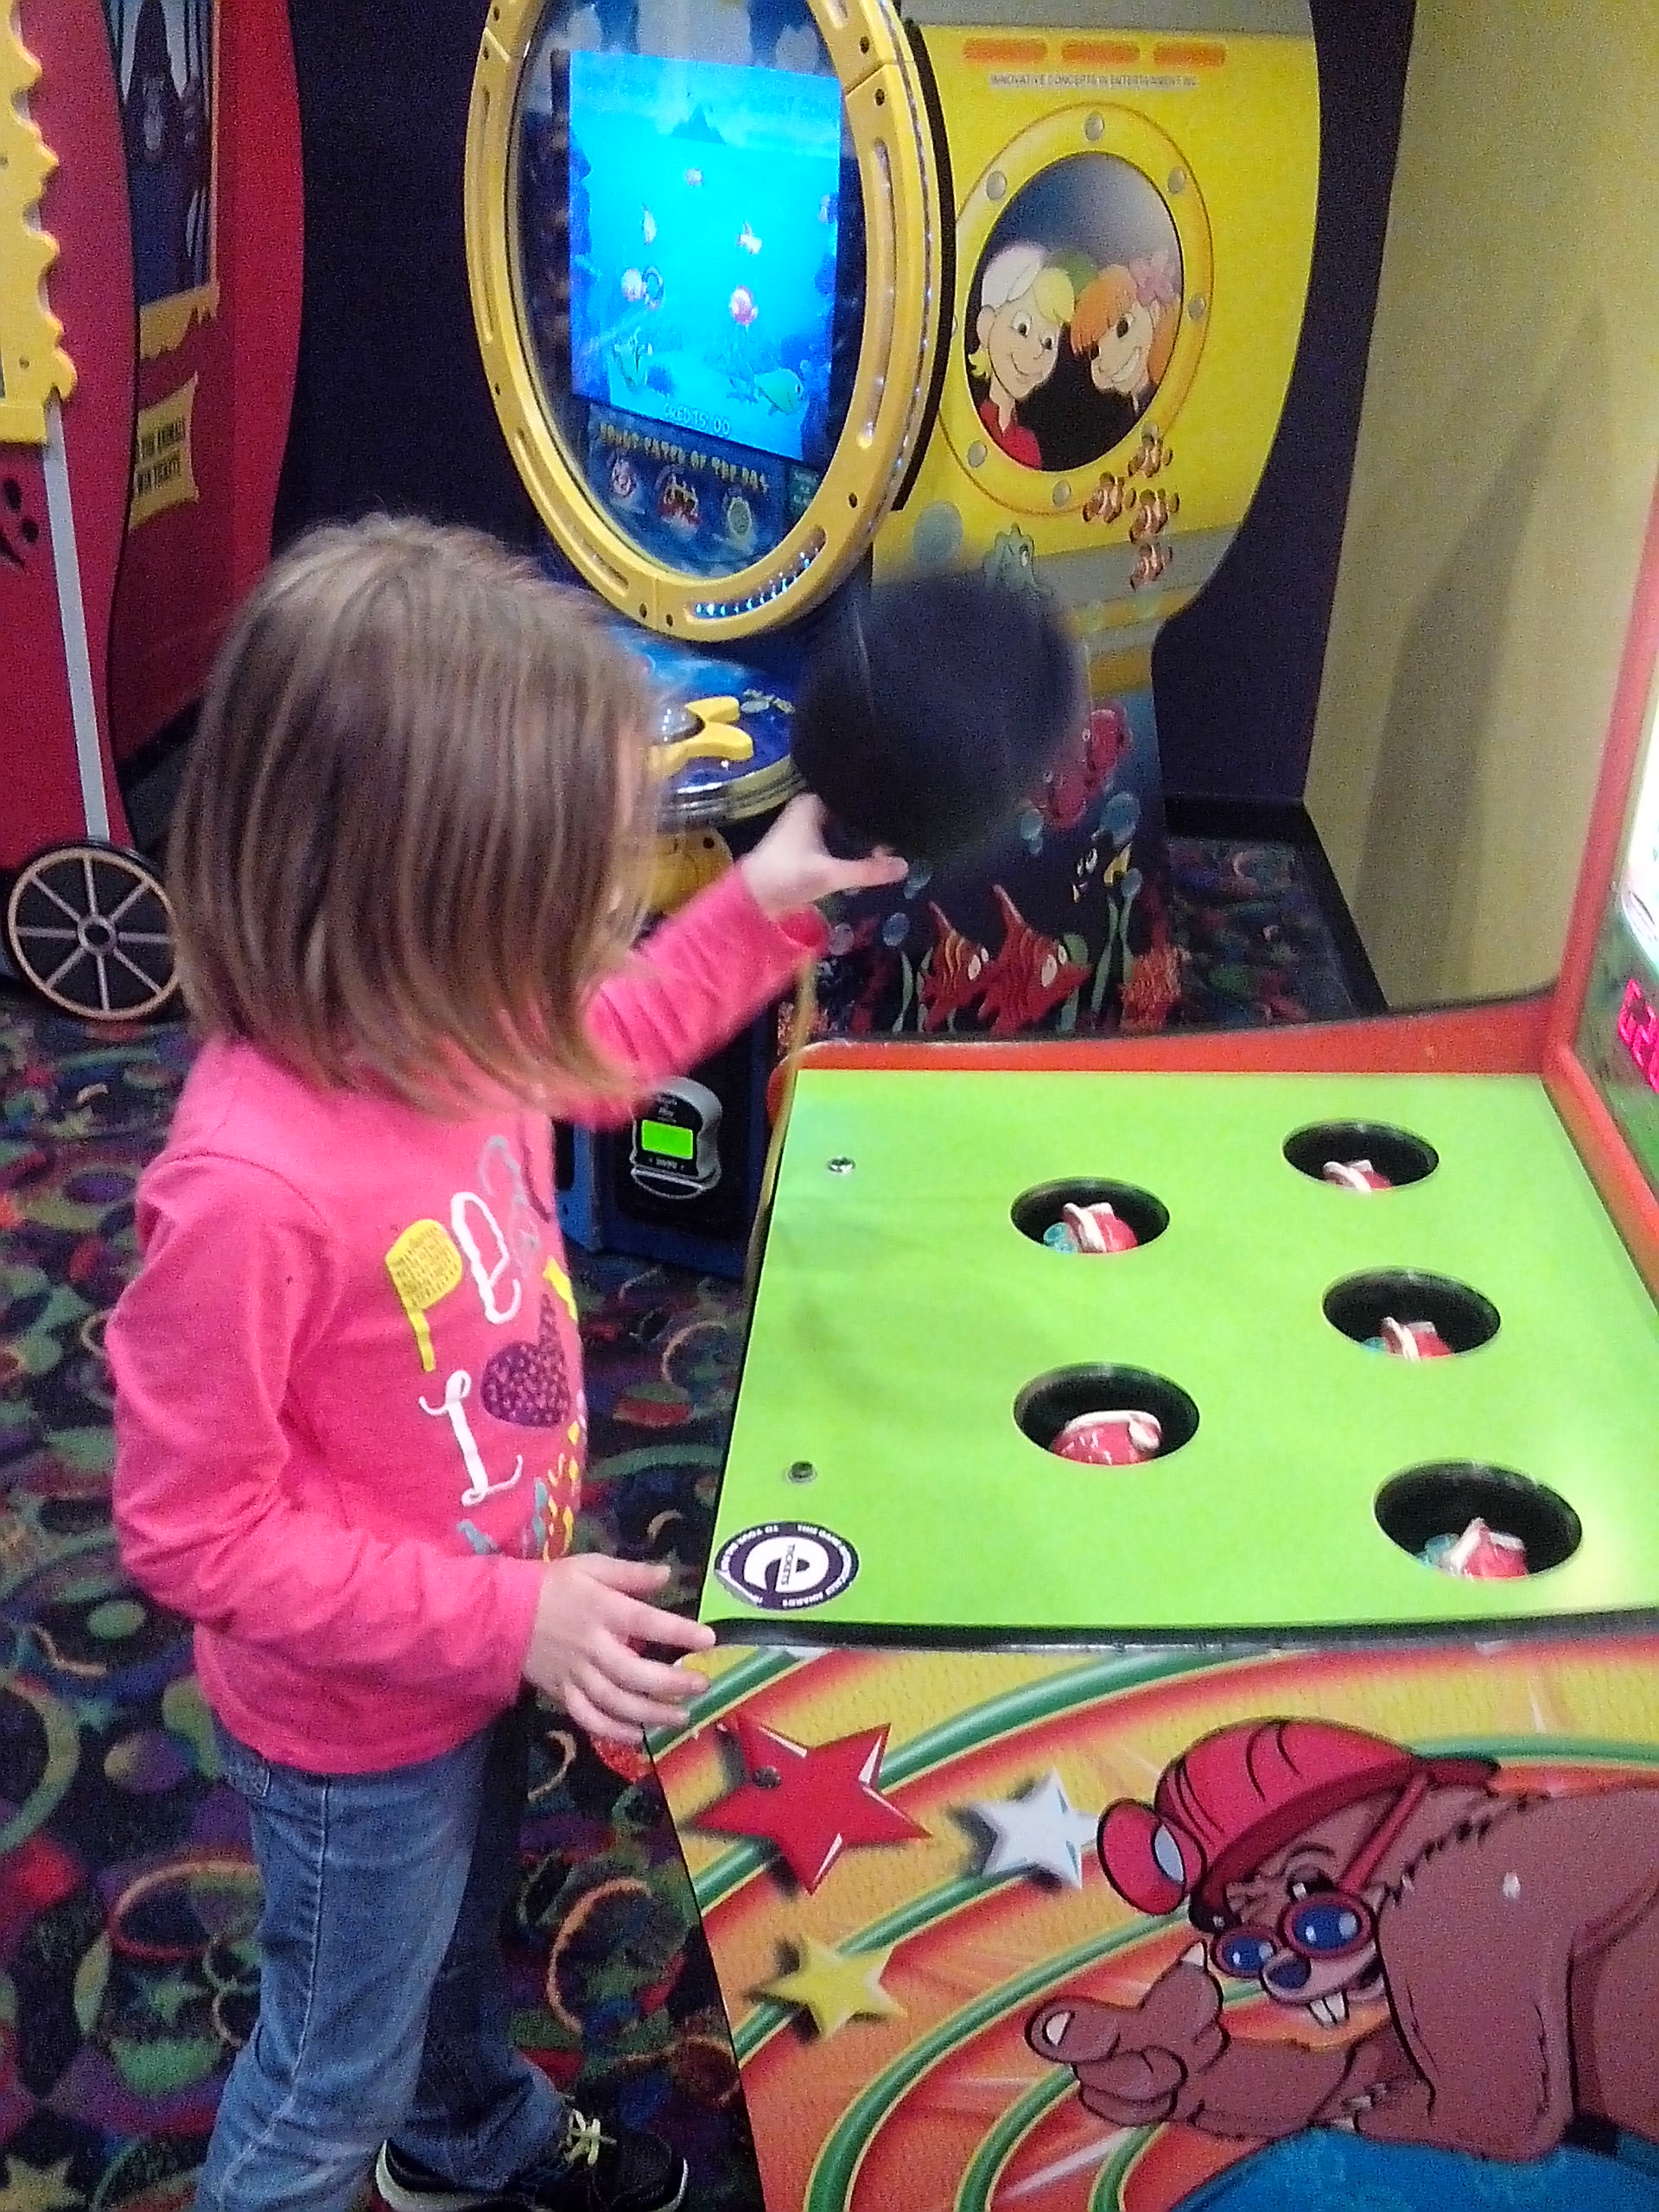 Rhi playing Games at Amazing Pizza Machine